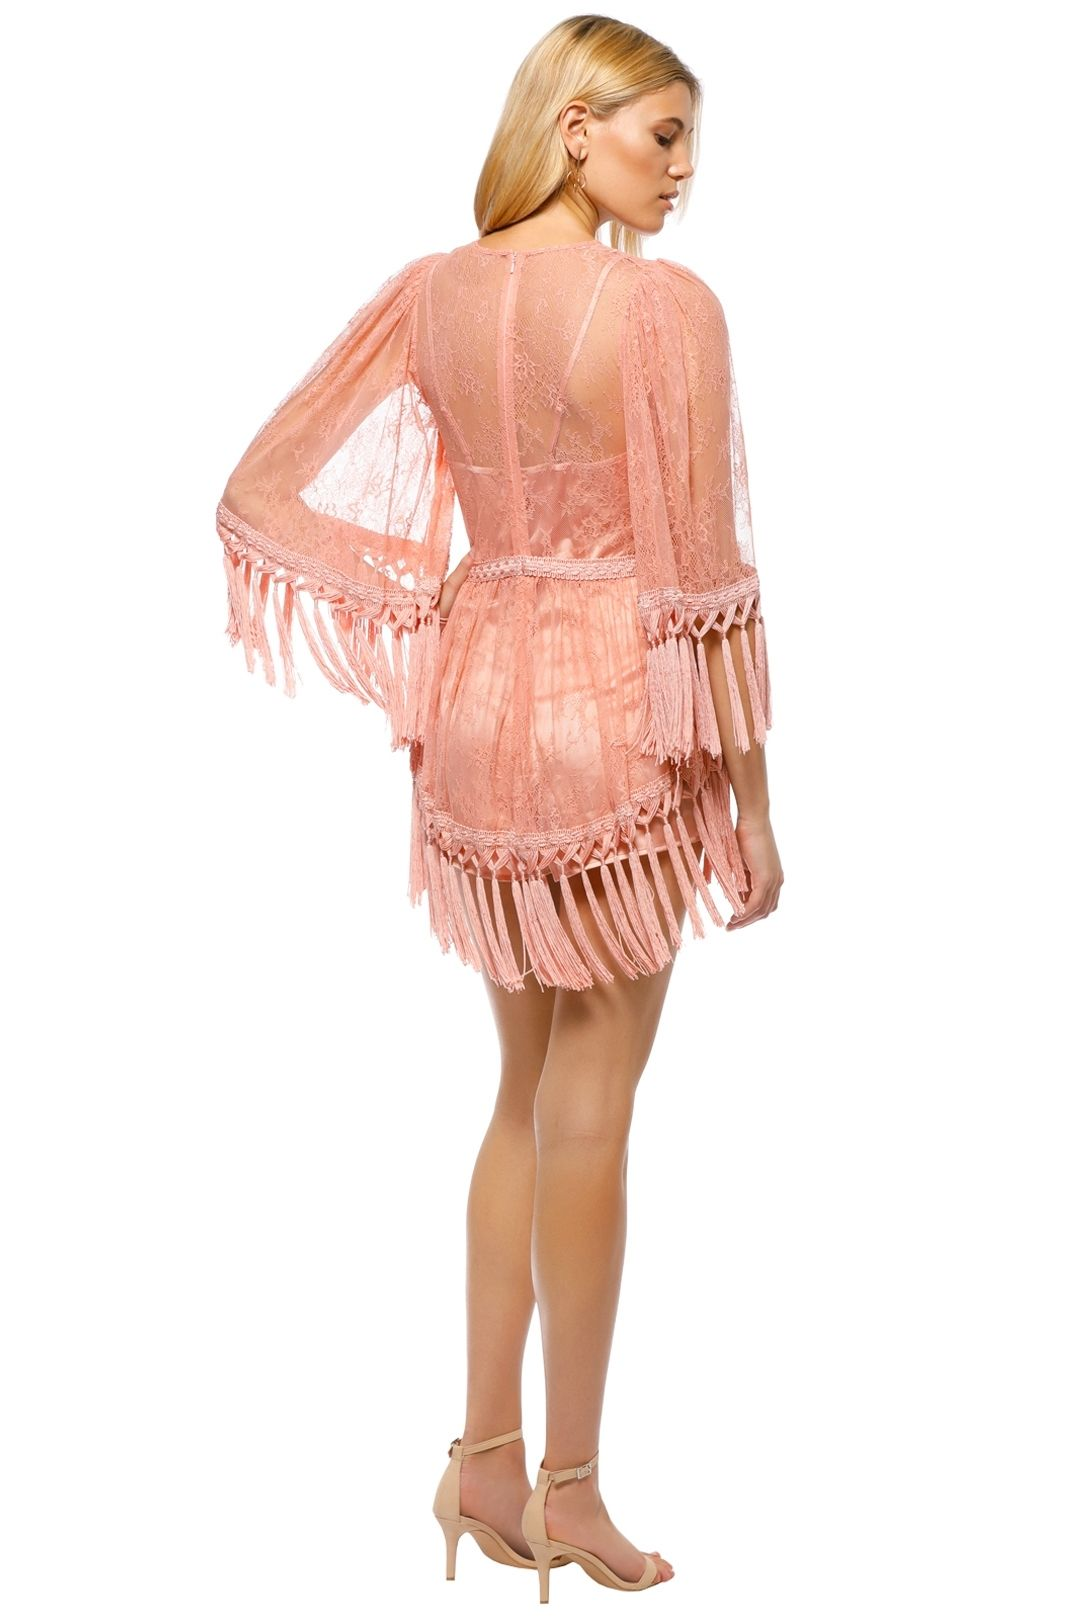 Alice McCall - Are You Ready Girl Mini Dress - Dusty Rose - Back